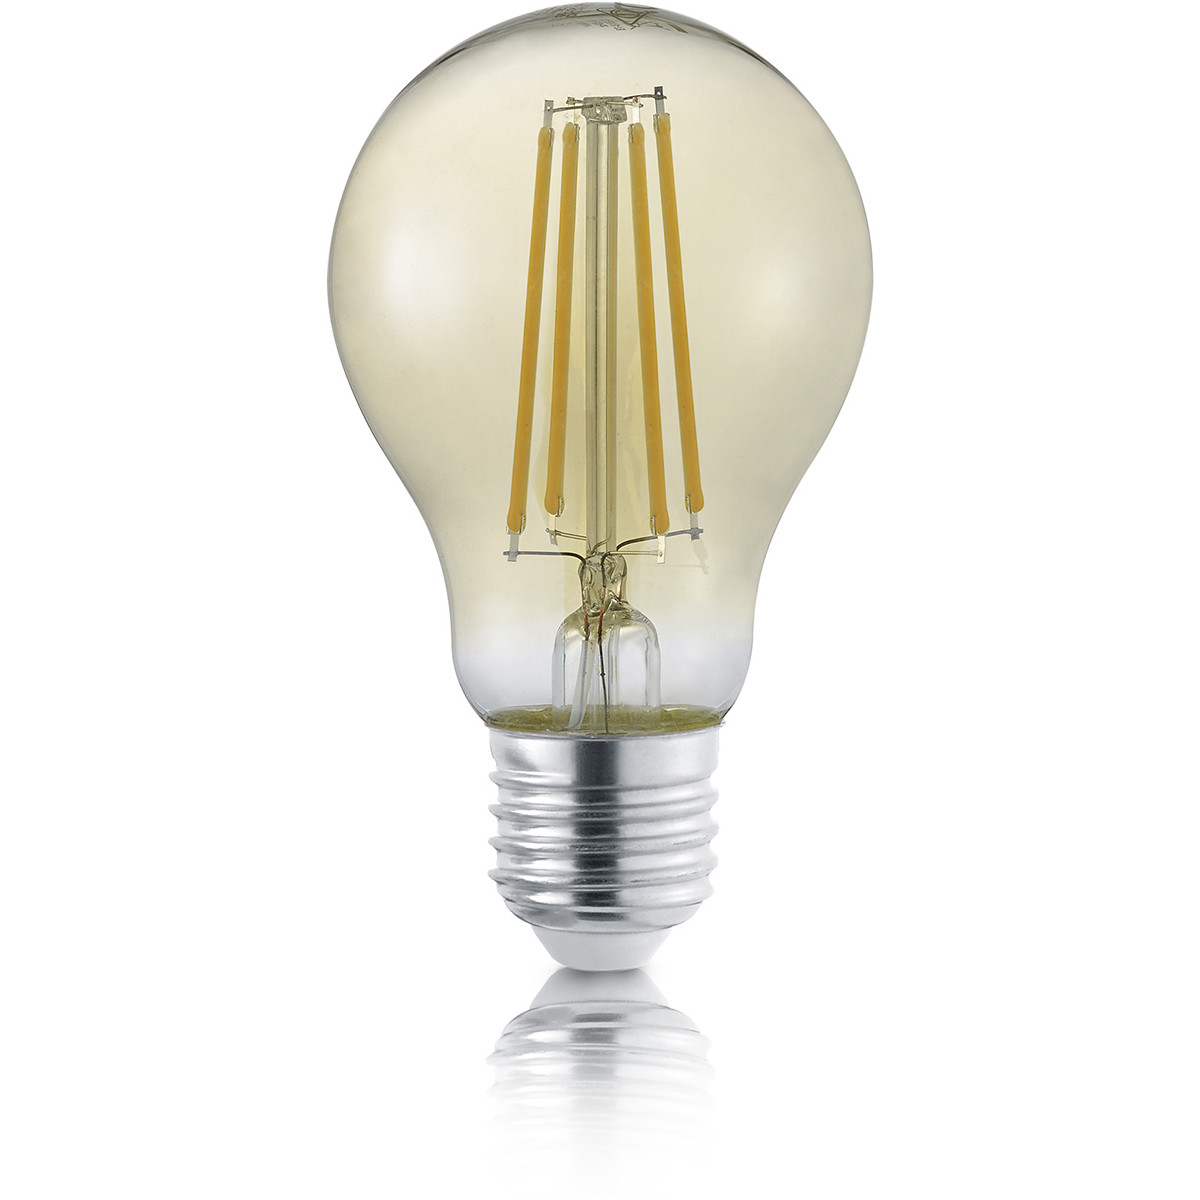 LED Lamp - Filament - Trion Limpo - E27 Fitting - 8W - Warm Wit 2700K - Amber - Glas